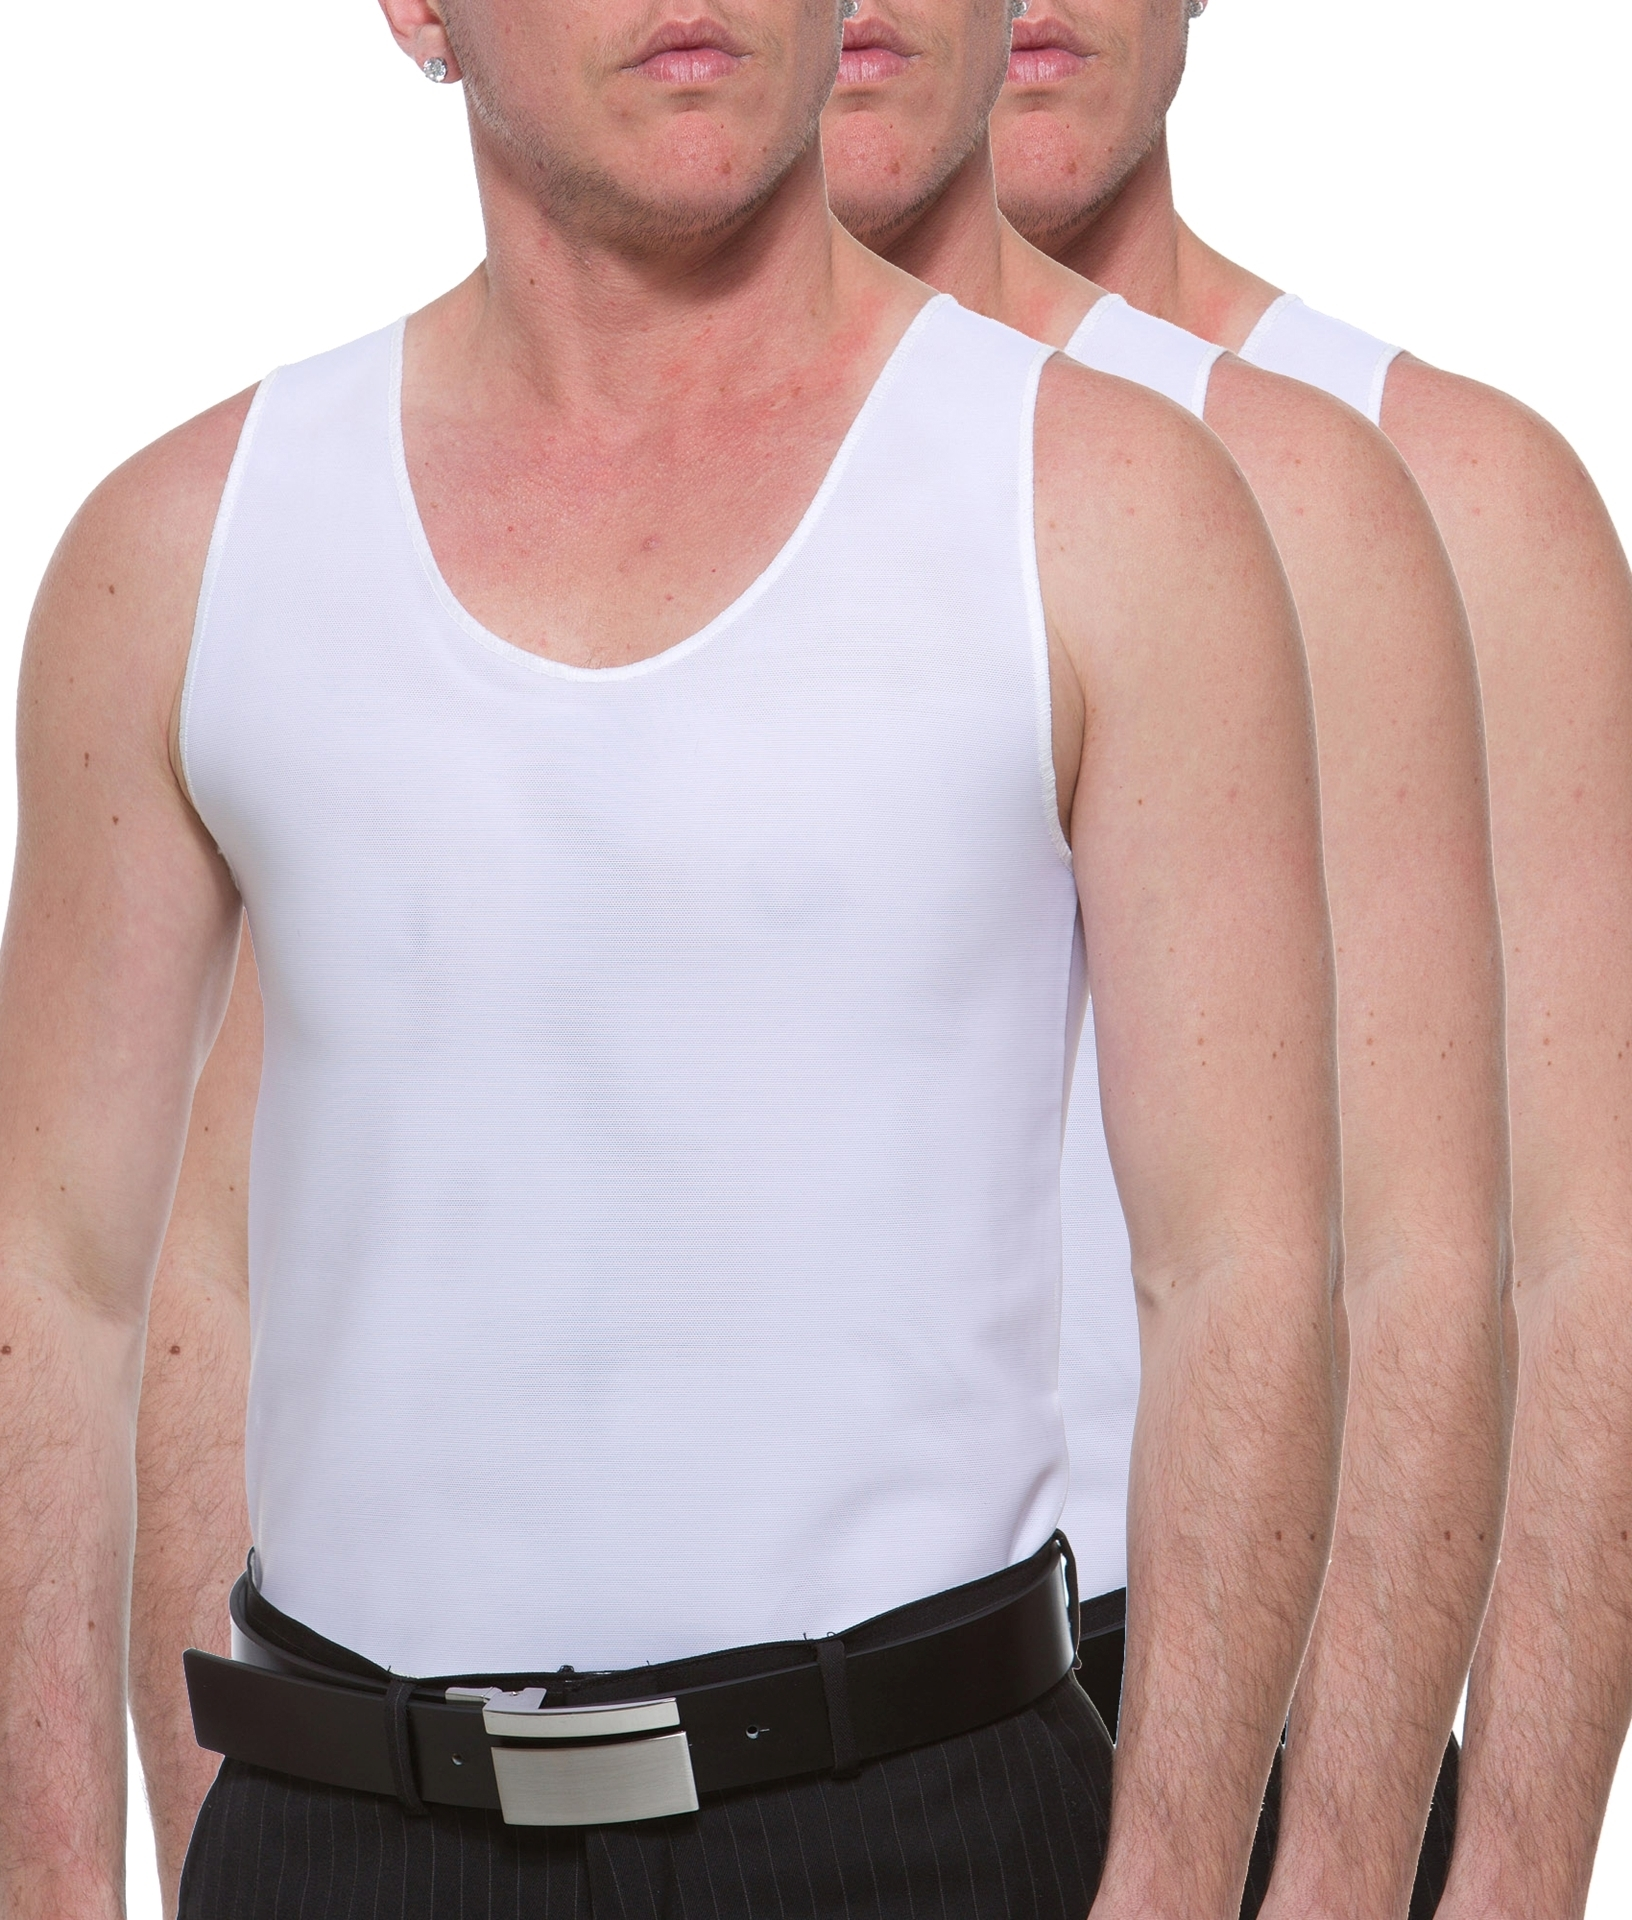 FTM Ultimate Chest Binder Tank By Underworks. FTM Chest